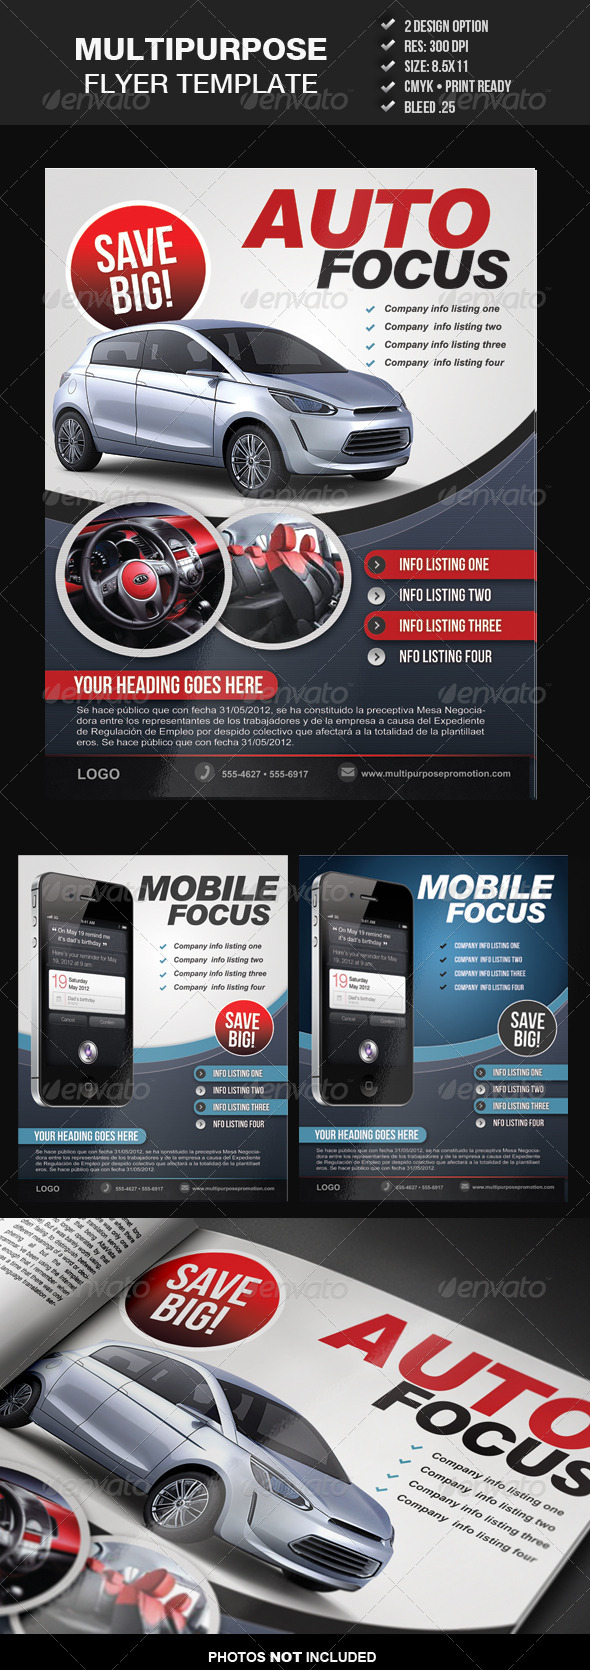 Multipurpose Flyer Template 3 - Commerce Flyers